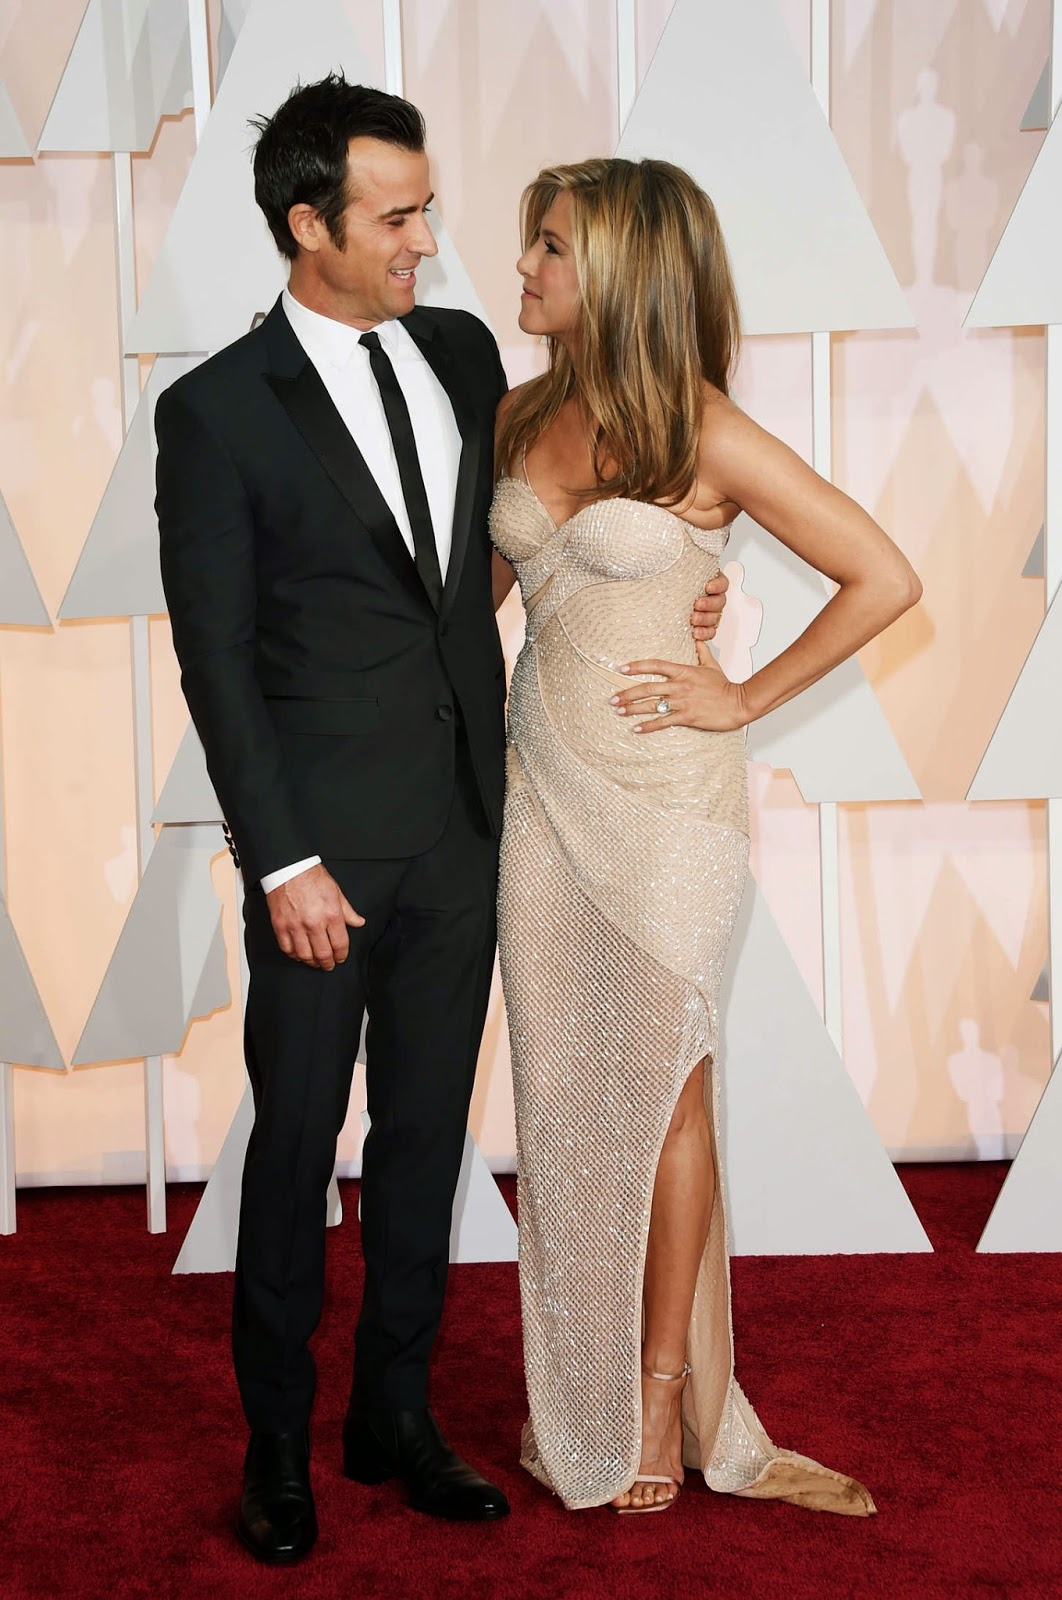 Jennifer Aniston sizzles in a sequinned Versace dress at the 2015 Oscars in Hollywood